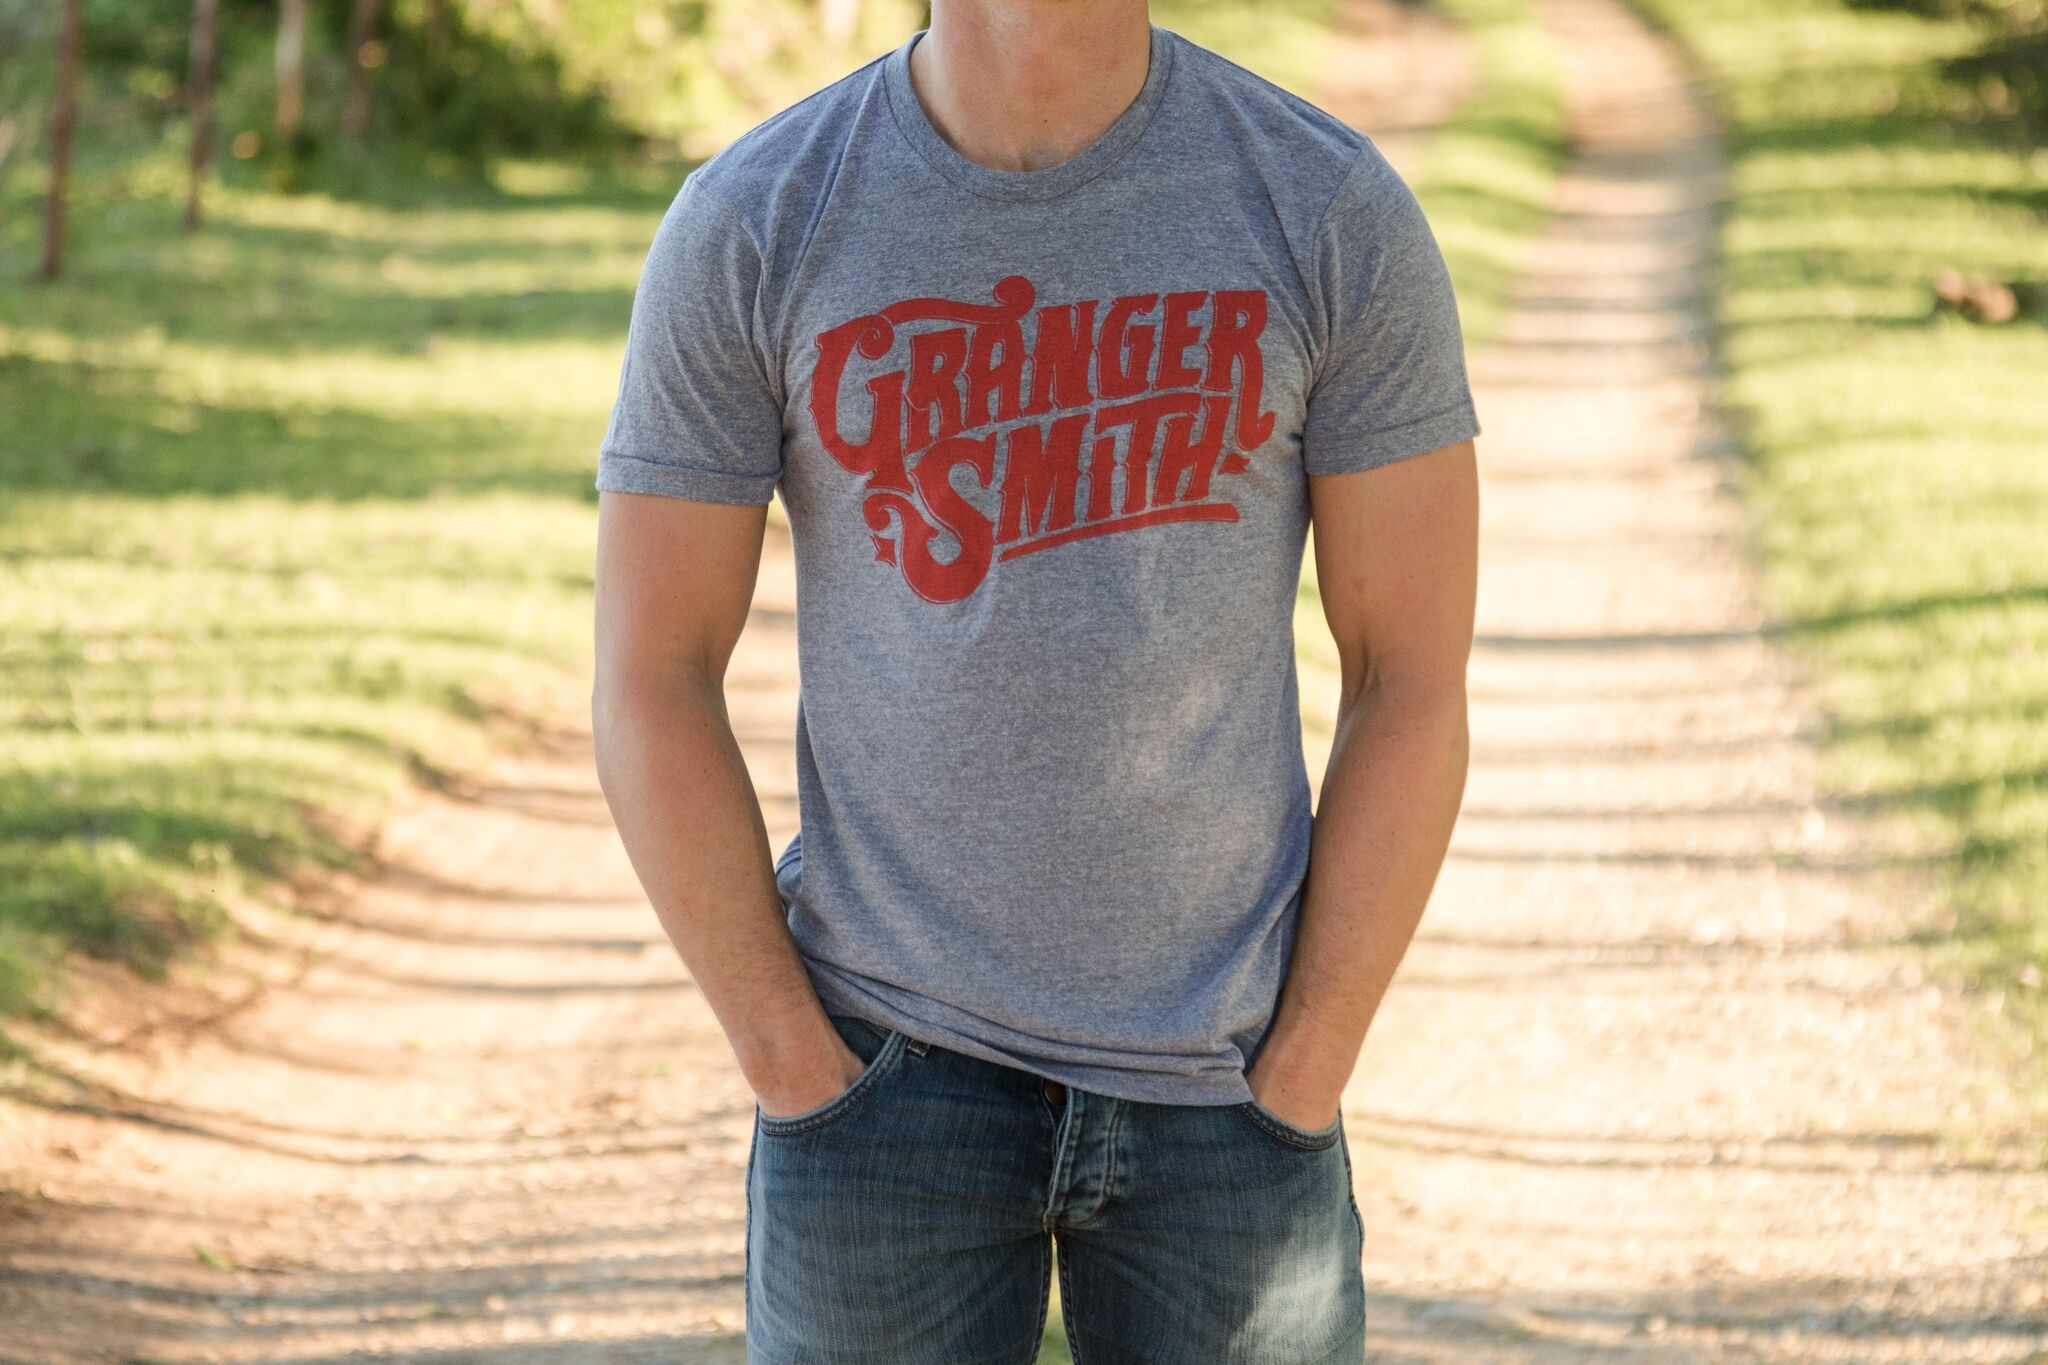 Granger Smith Tee (Grey)